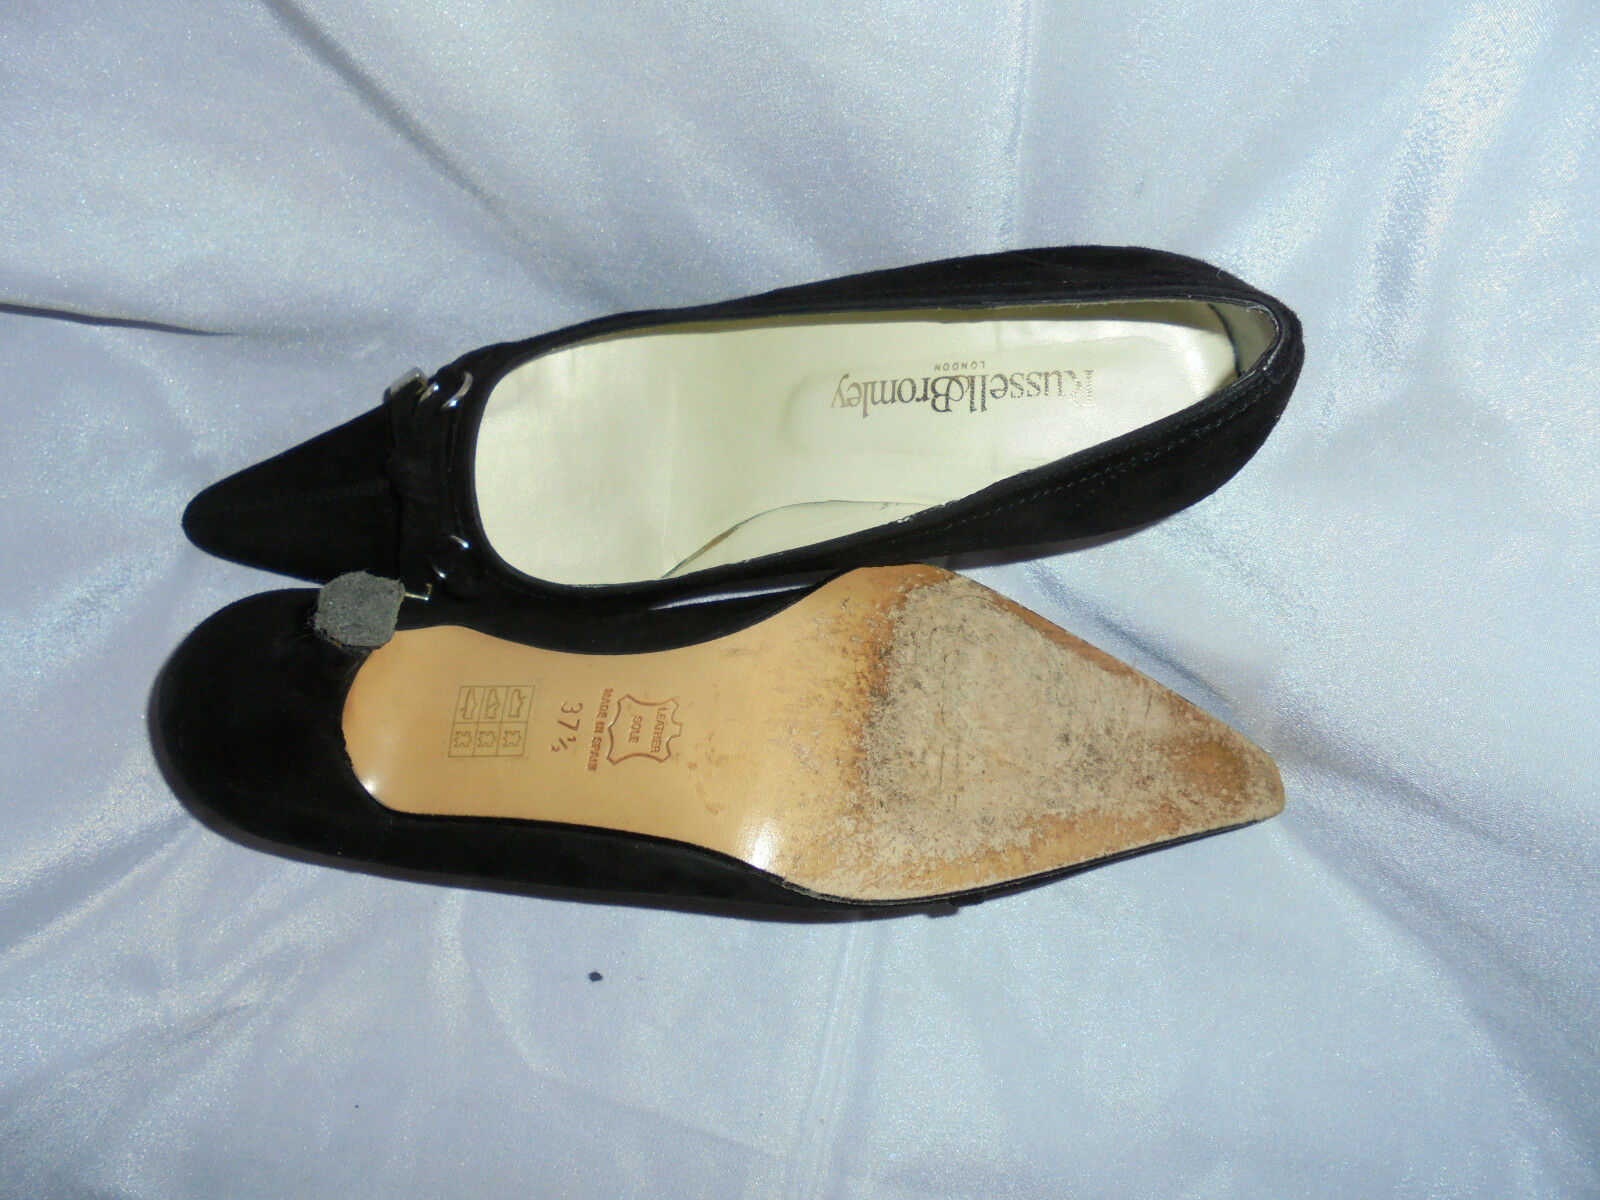 RUSSELL & BROMLEY WOMEN'S BLACK SUEDE LEATHER SLIP ON SHOE 37.5 SZ UK 4.5 EU 37.5 SHOE VGC 73b65a